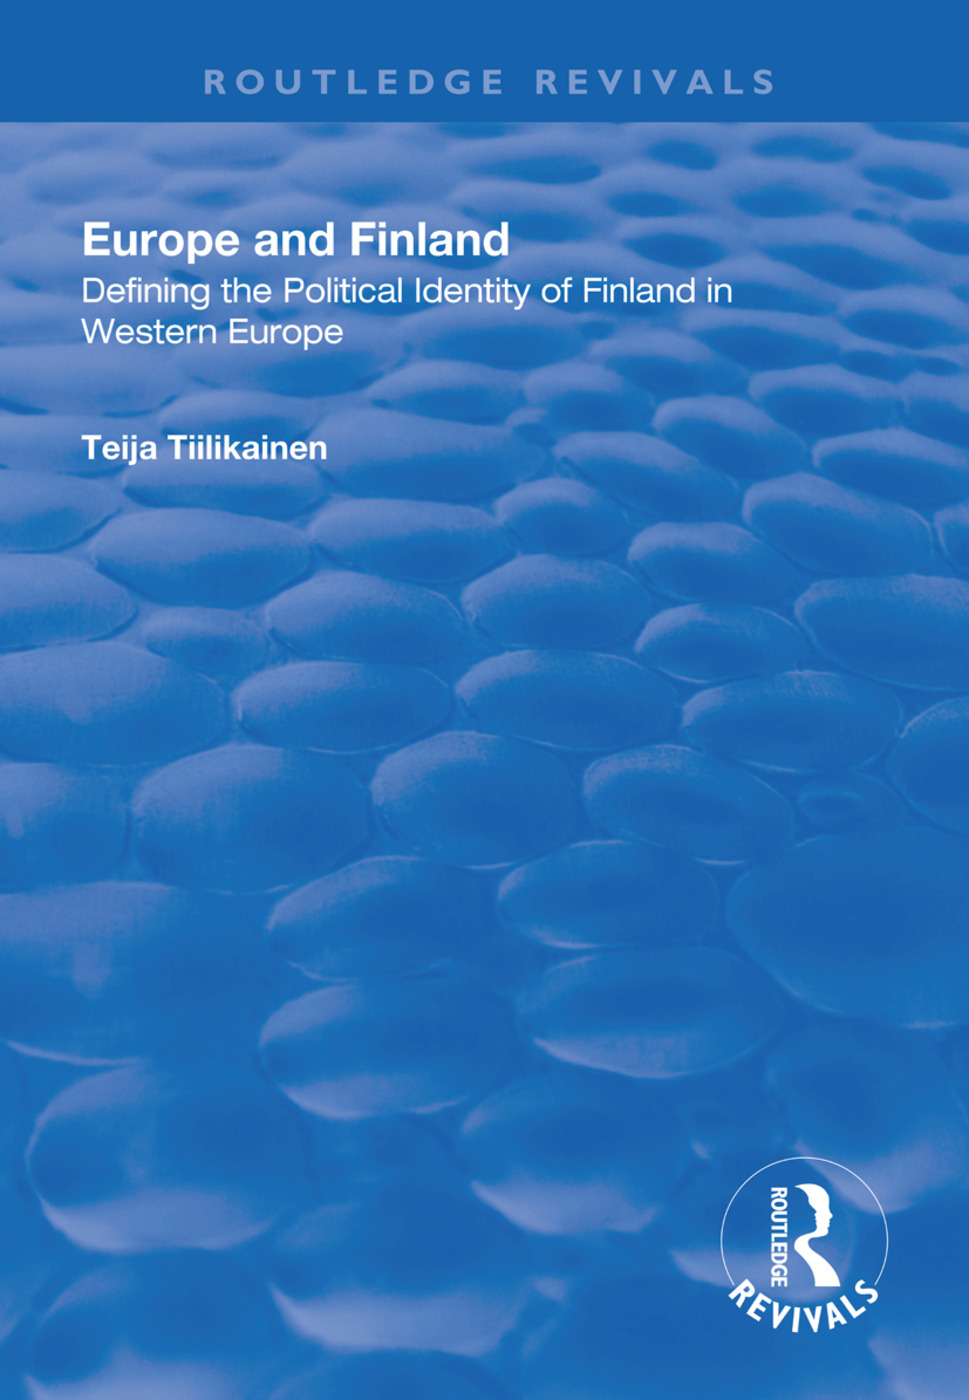 Europe and Finland: Defining the Political Identity of Finland in Western Europe book cover